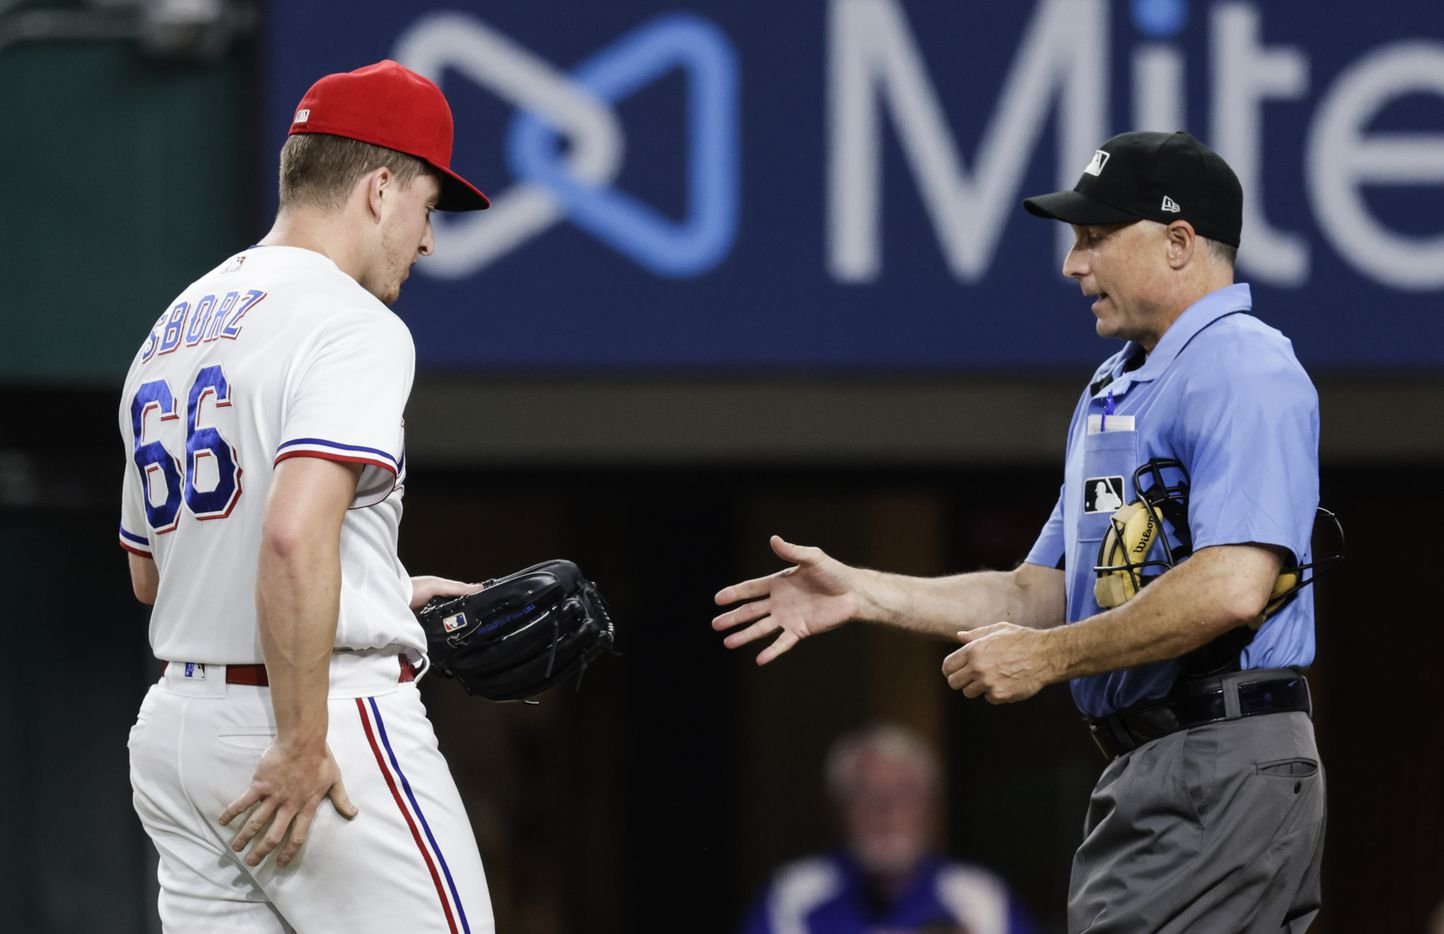 Home plate umpire Dan Iassogna inspects Texas Rangers relief pitcher Josh Sborz's glove during the sixth inning of a baseball game against the Oakland Athletics in Arlington, Monday, June 21, 2021. (Brandon Wade/Special Contributor)